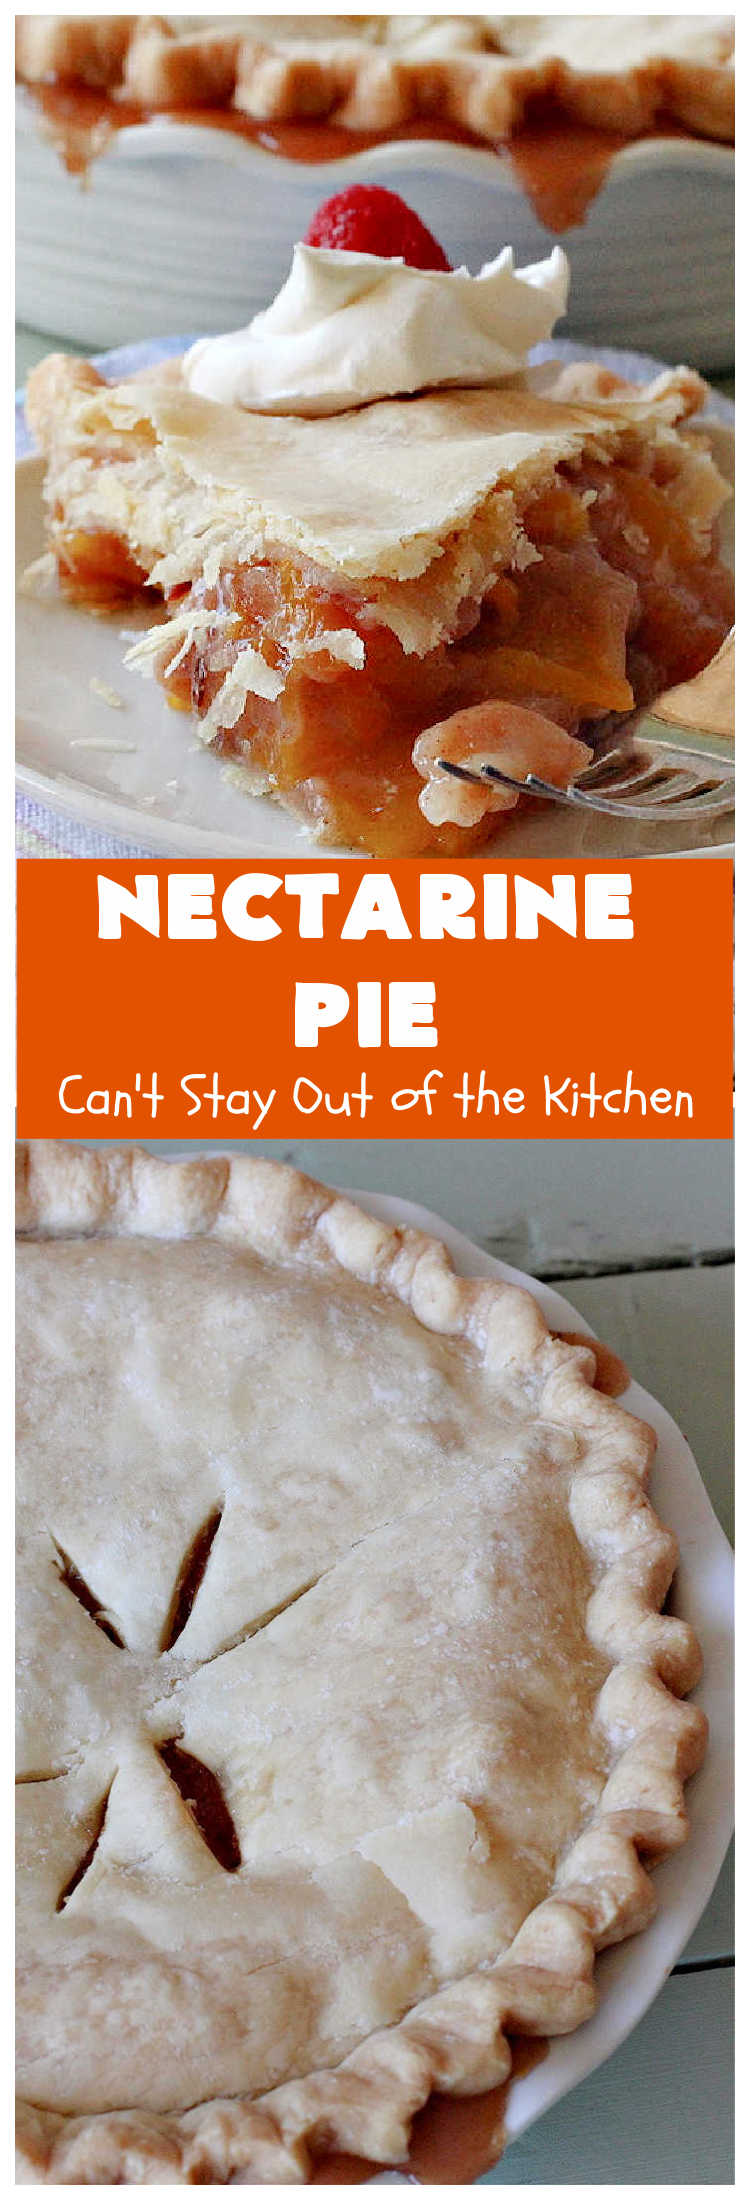 Nectarine Pie   Can't Stay Out of the Kitchen   this is absolutely the best #FruitPie ever! I never realized #nectarines tasted so great in #dessert. Better than #PeachPie! Love this #recipe. #southern #NectarinePie #cinnamon #NectarineDessert #Canbassador #WashingtonStateFruitCommission #WashingtonStoneFruitGrowers